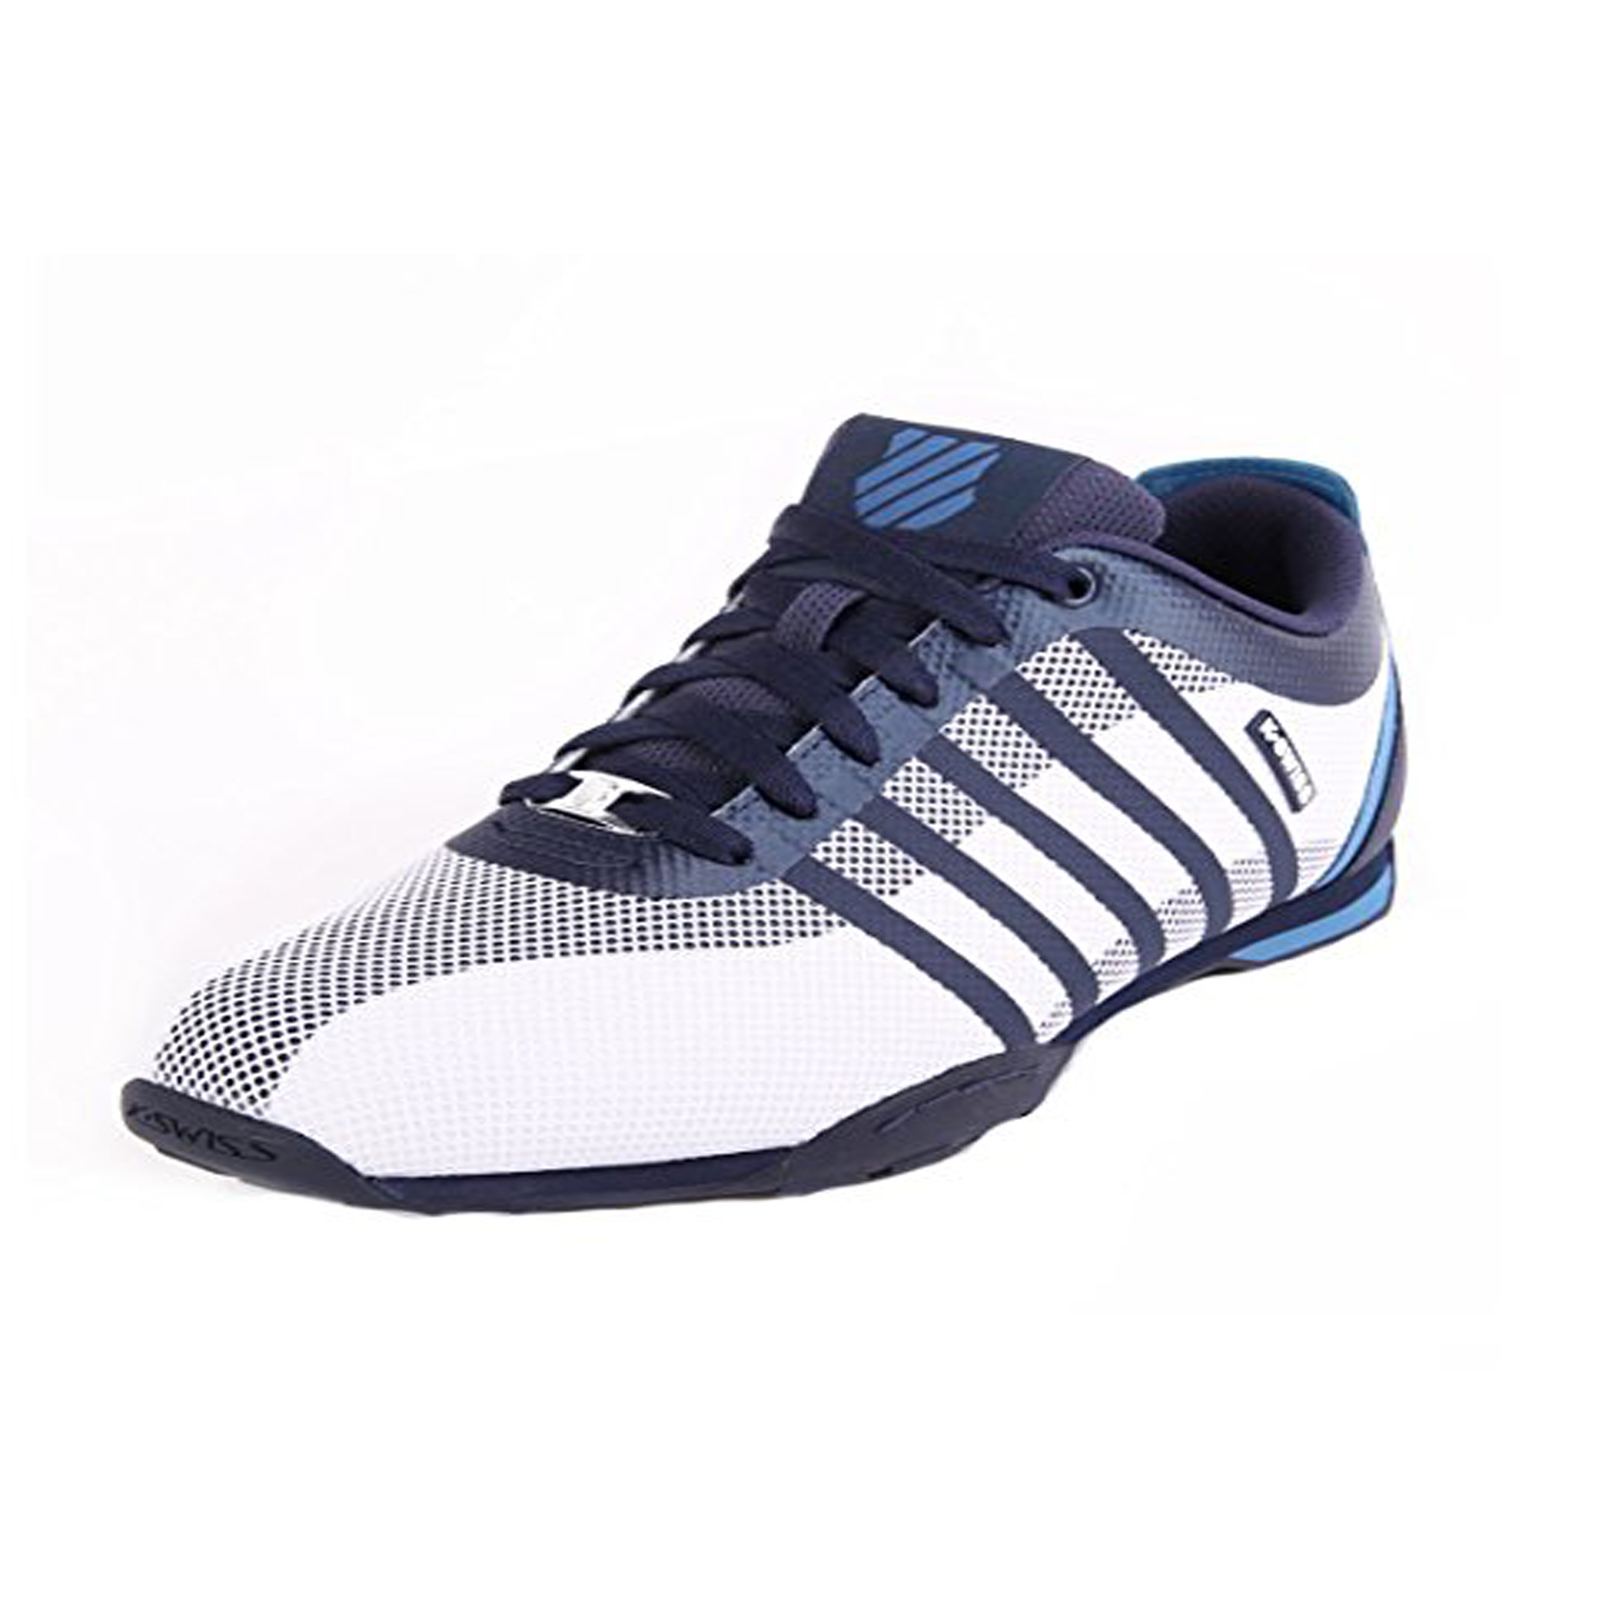 k swiss shoes malaysia sandals royal bahamian all-inclusive